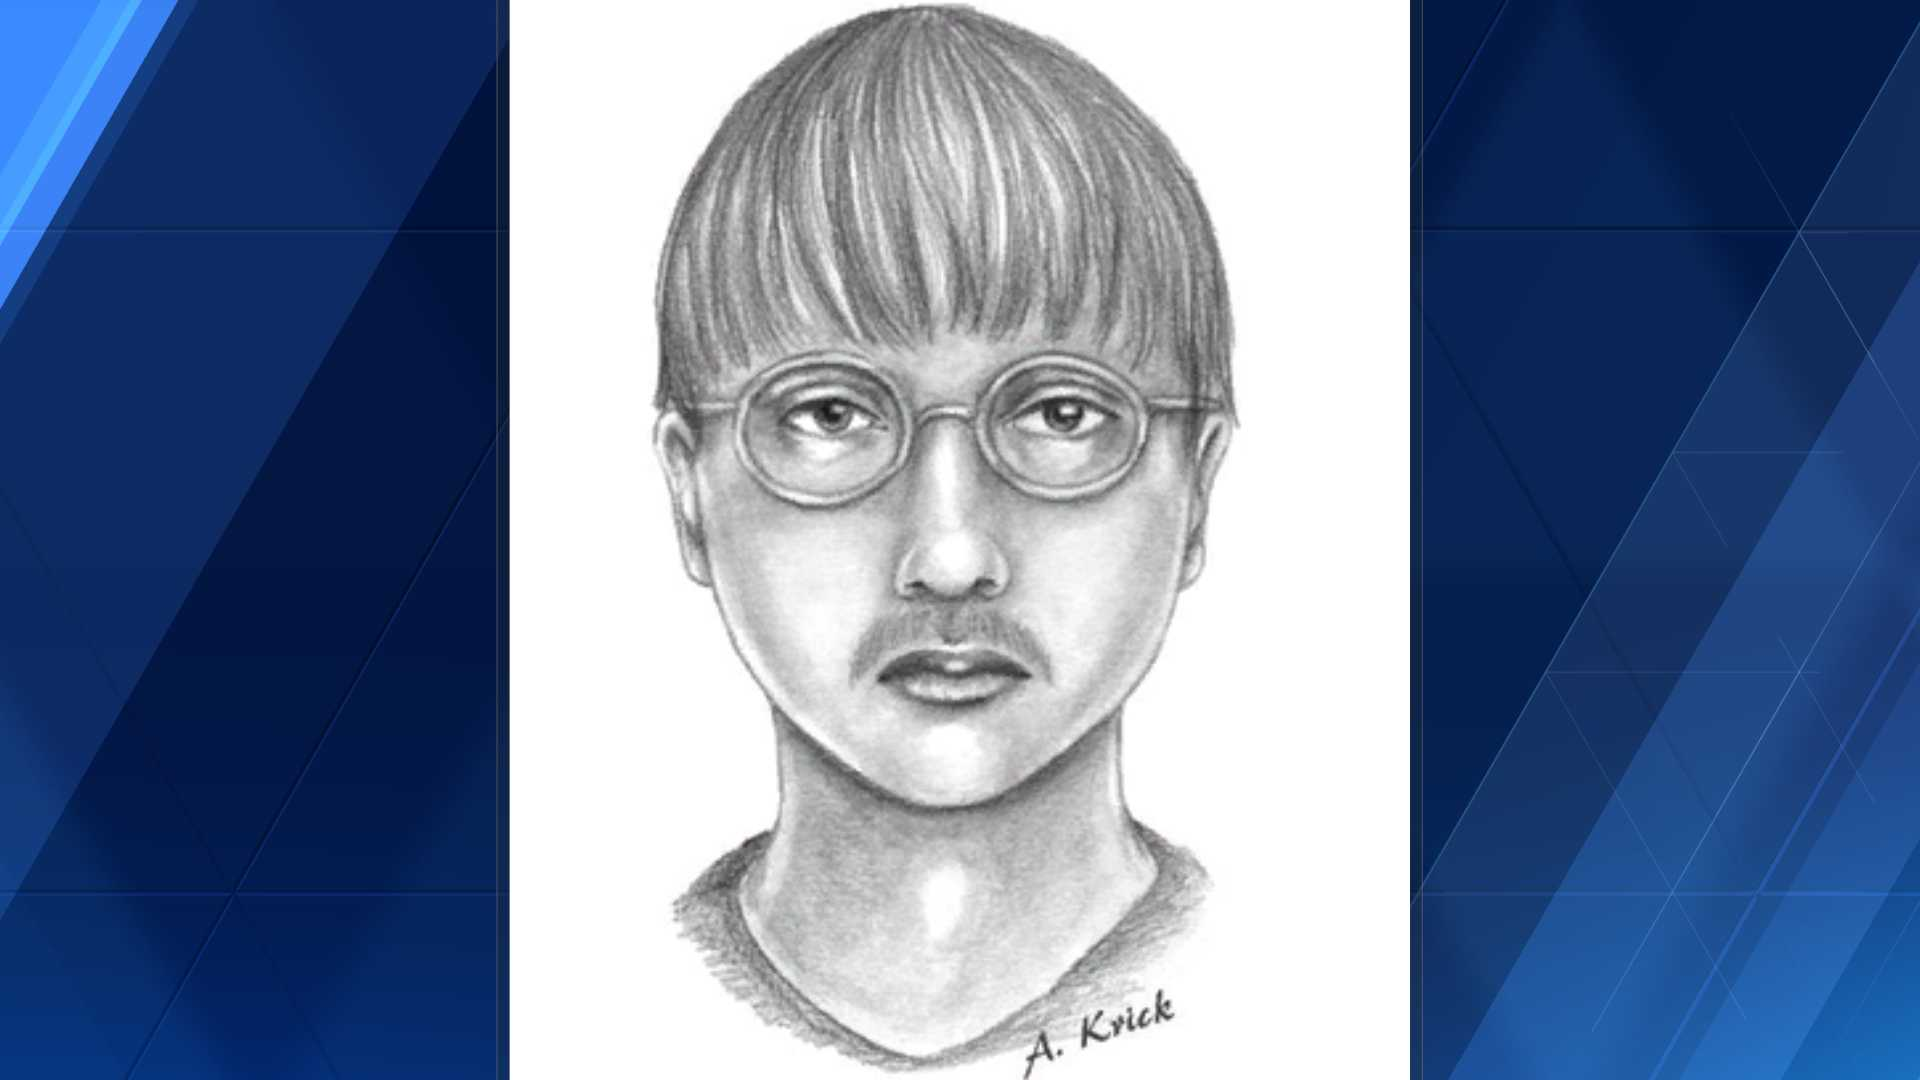 Suspect wanted for residential burglary and a sexual battery attempt on two minors